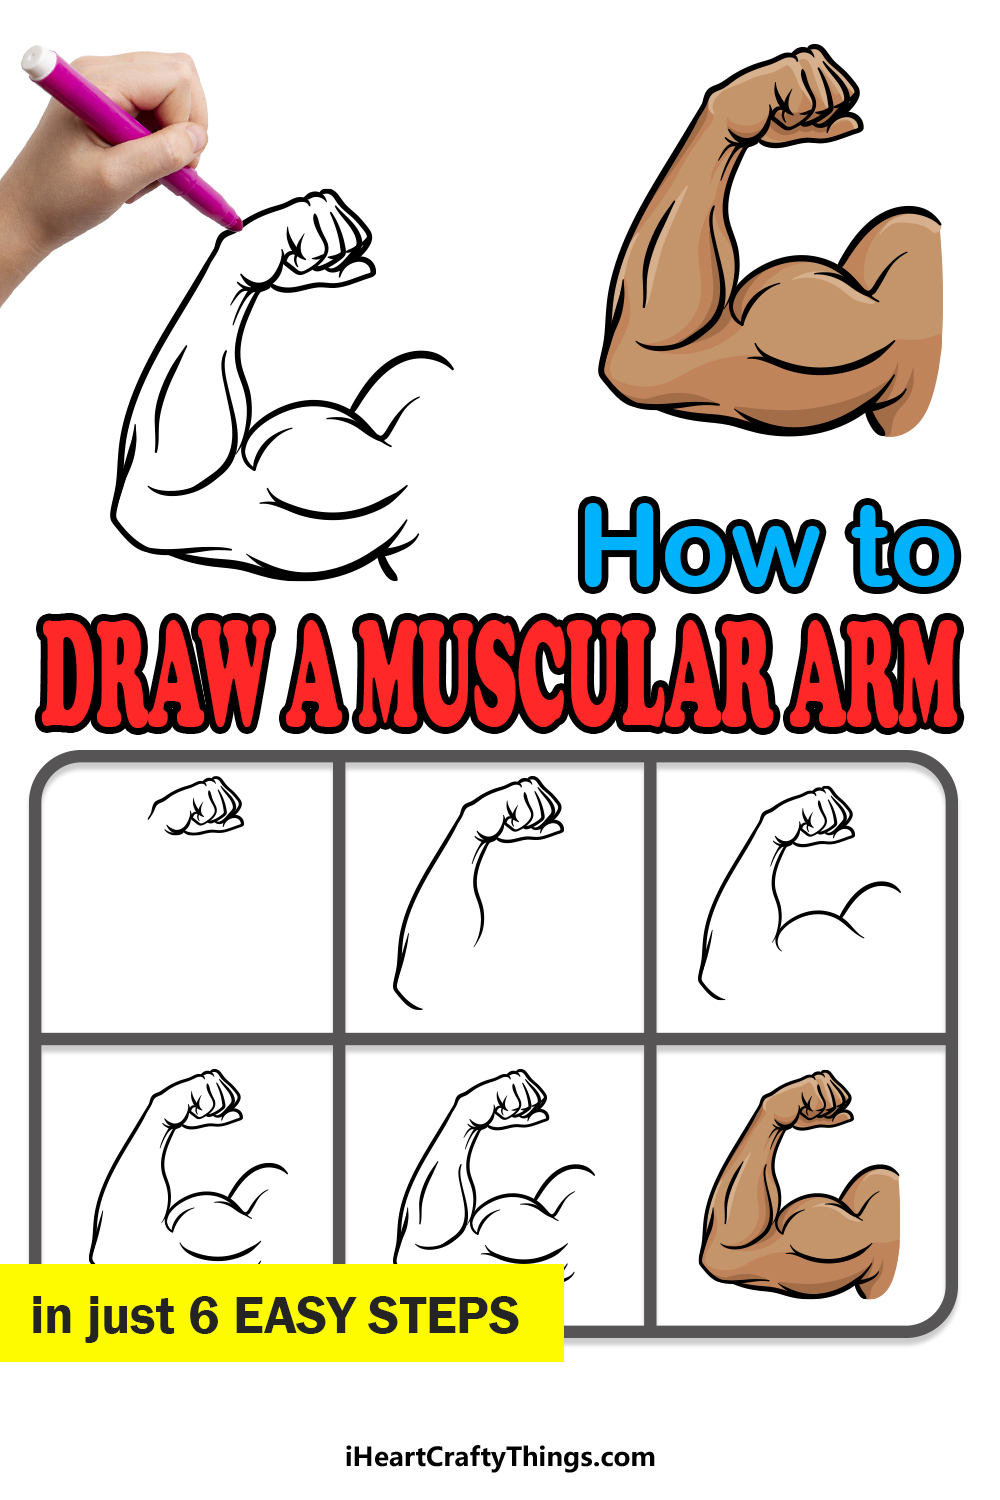 how to draw a muscular arm in 6 easy steps